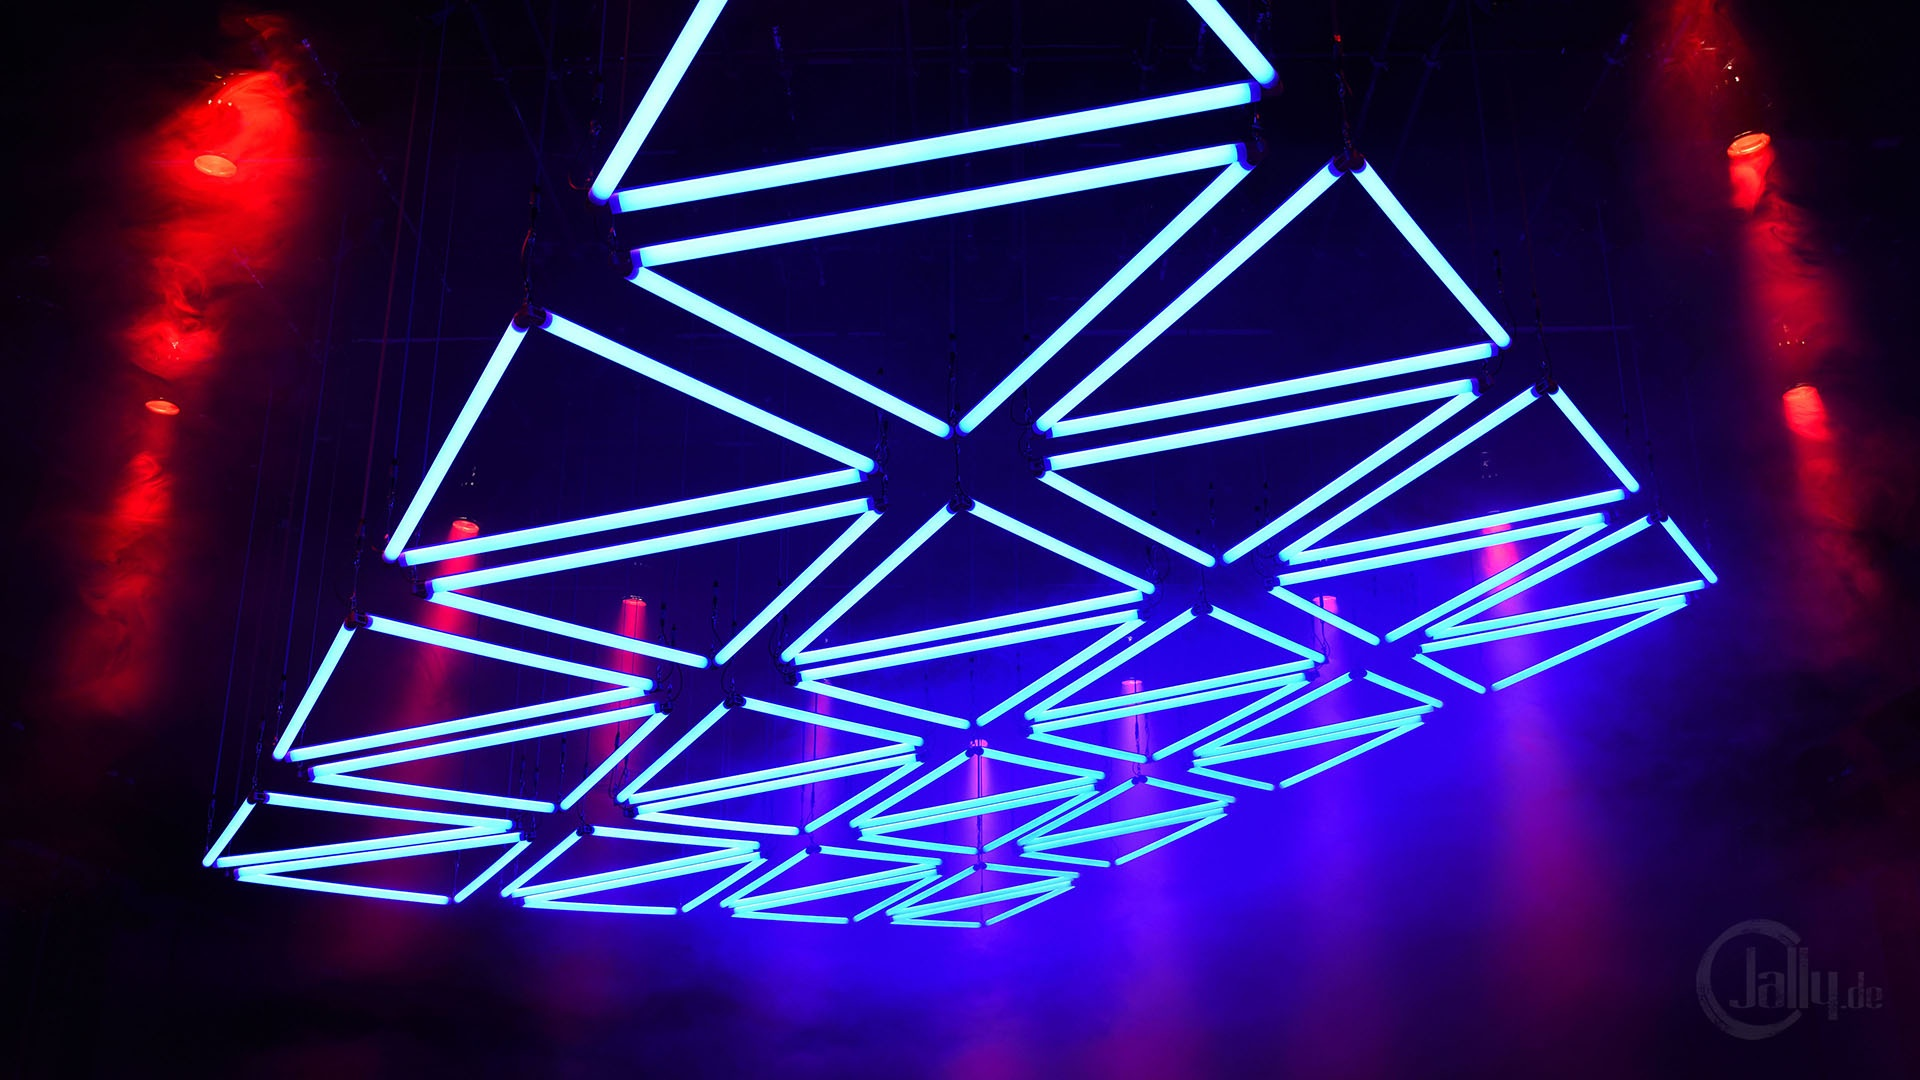 GRID Light Show at the Luminale by jally.de